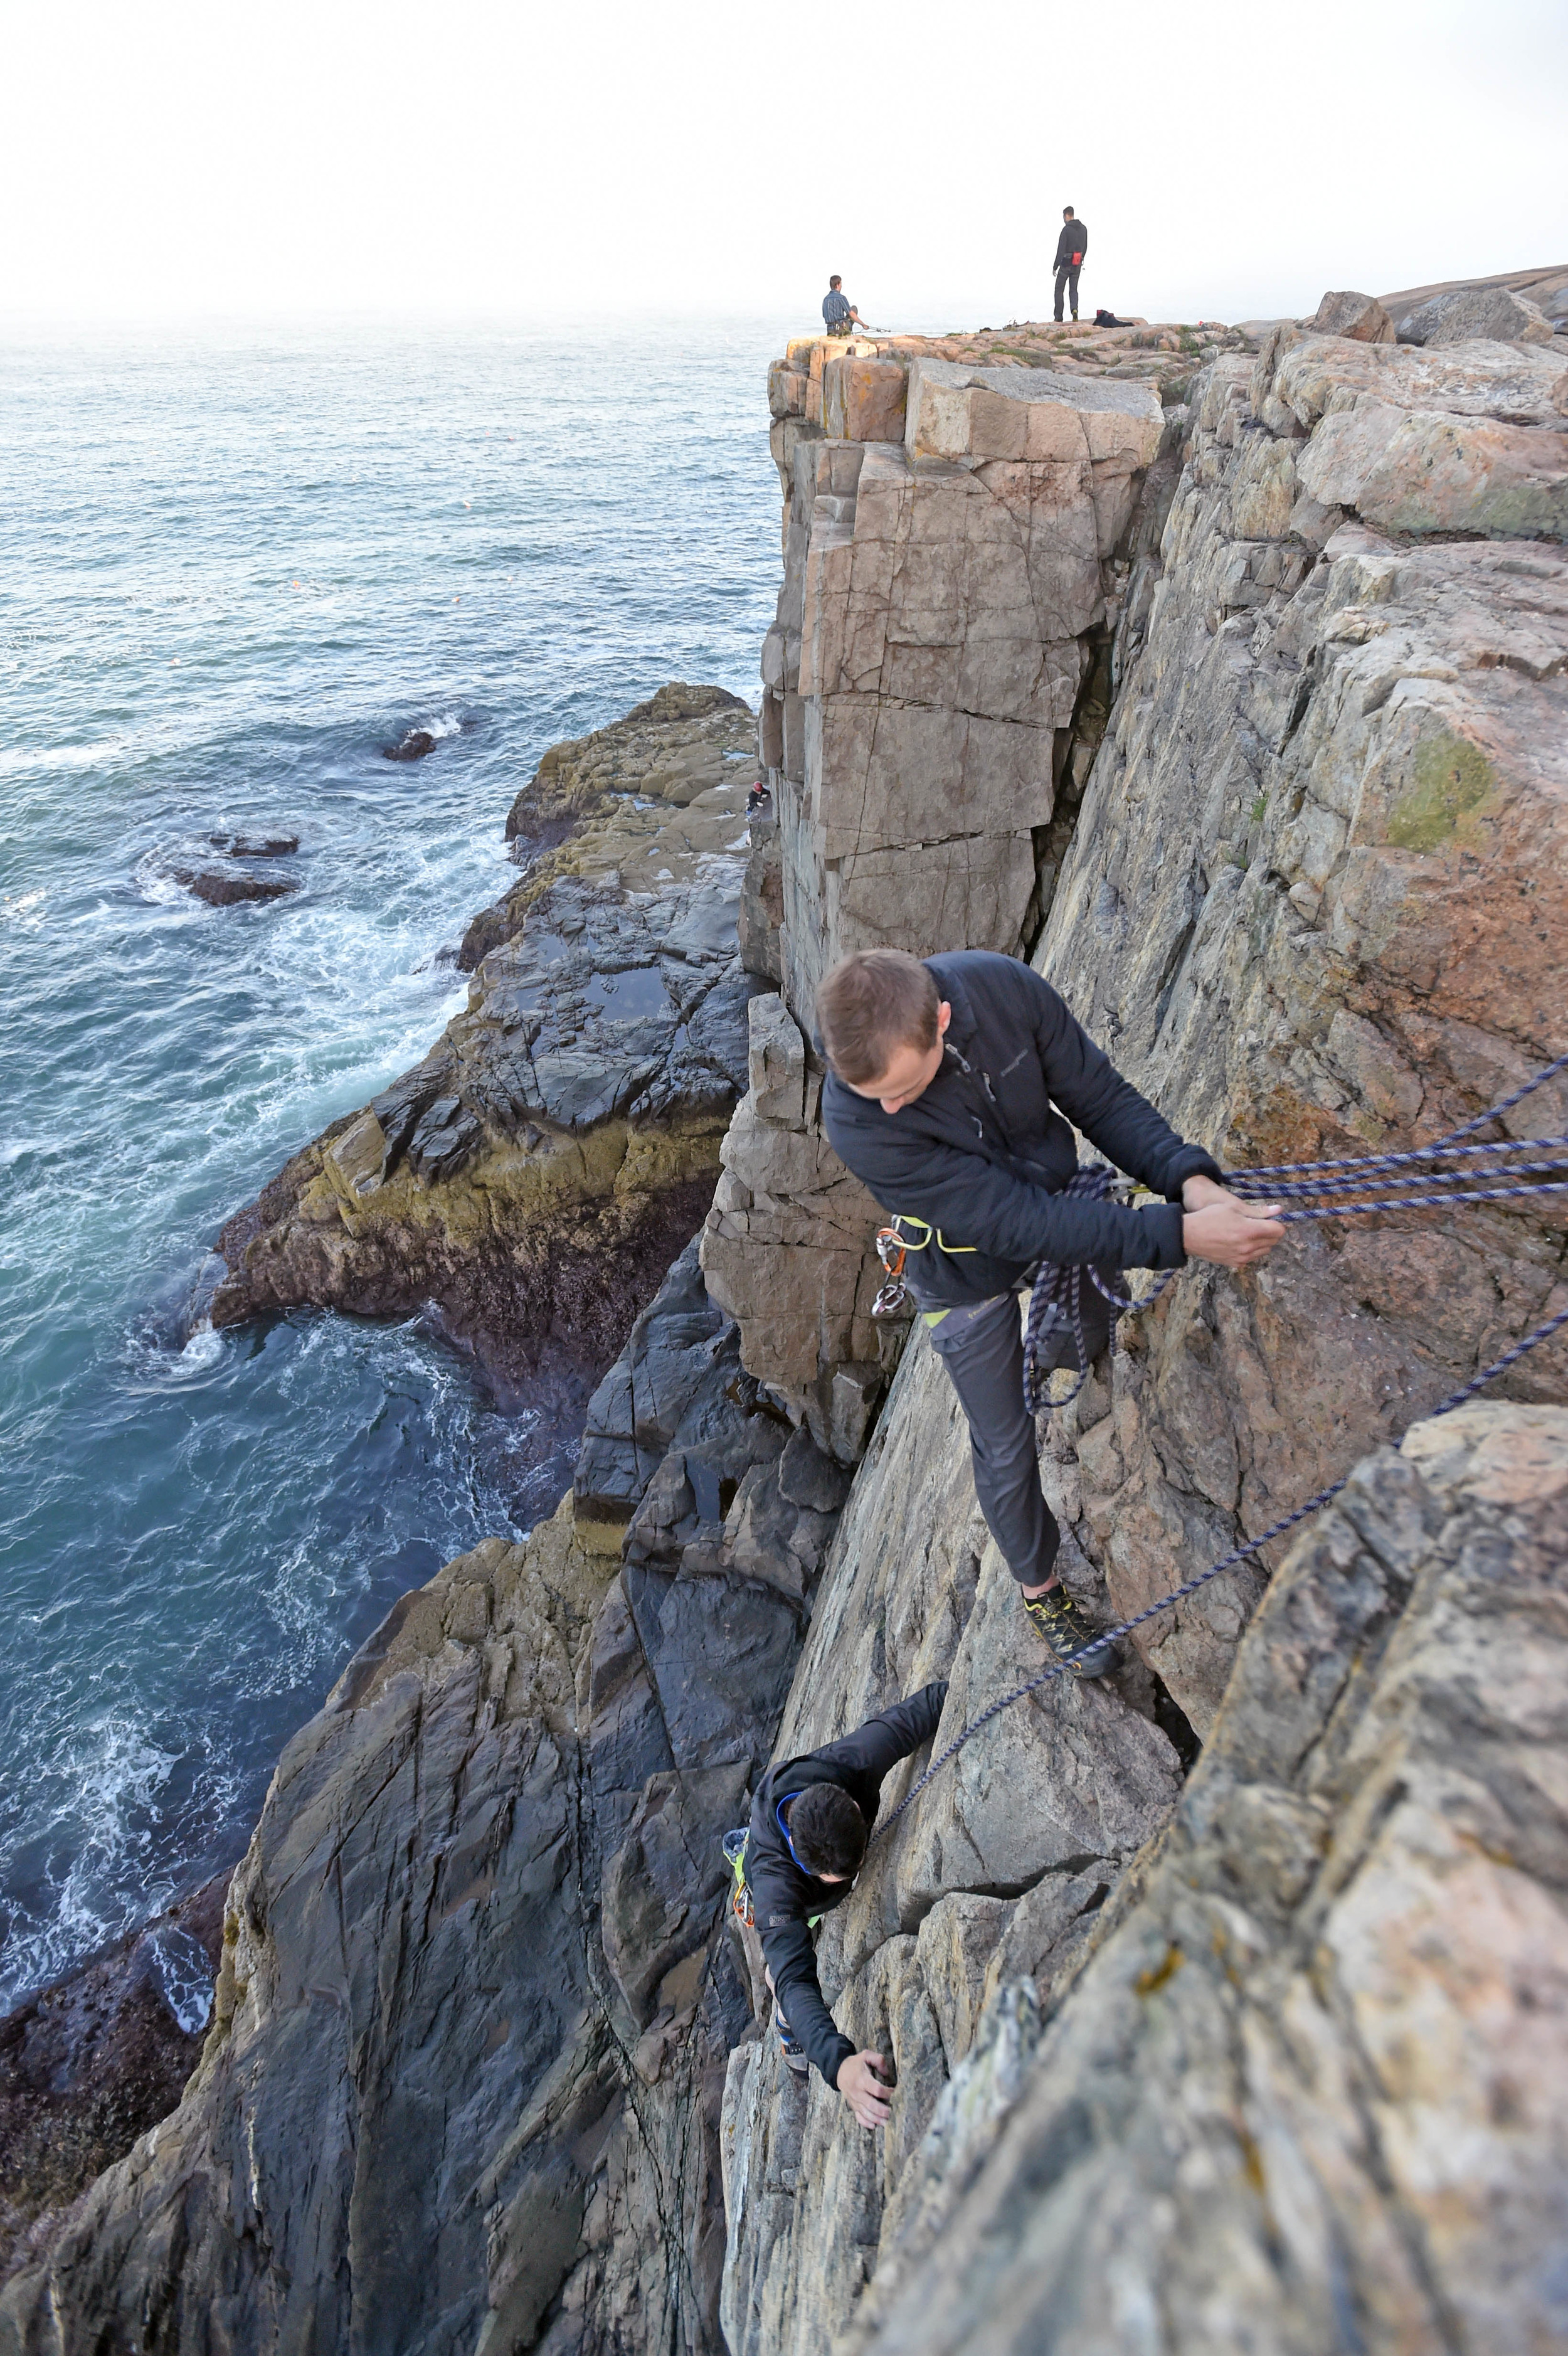 Ryan Howes rock climbing with a client in Acadia National Park off the coast of Maine.      photo credit: Michael Seaman